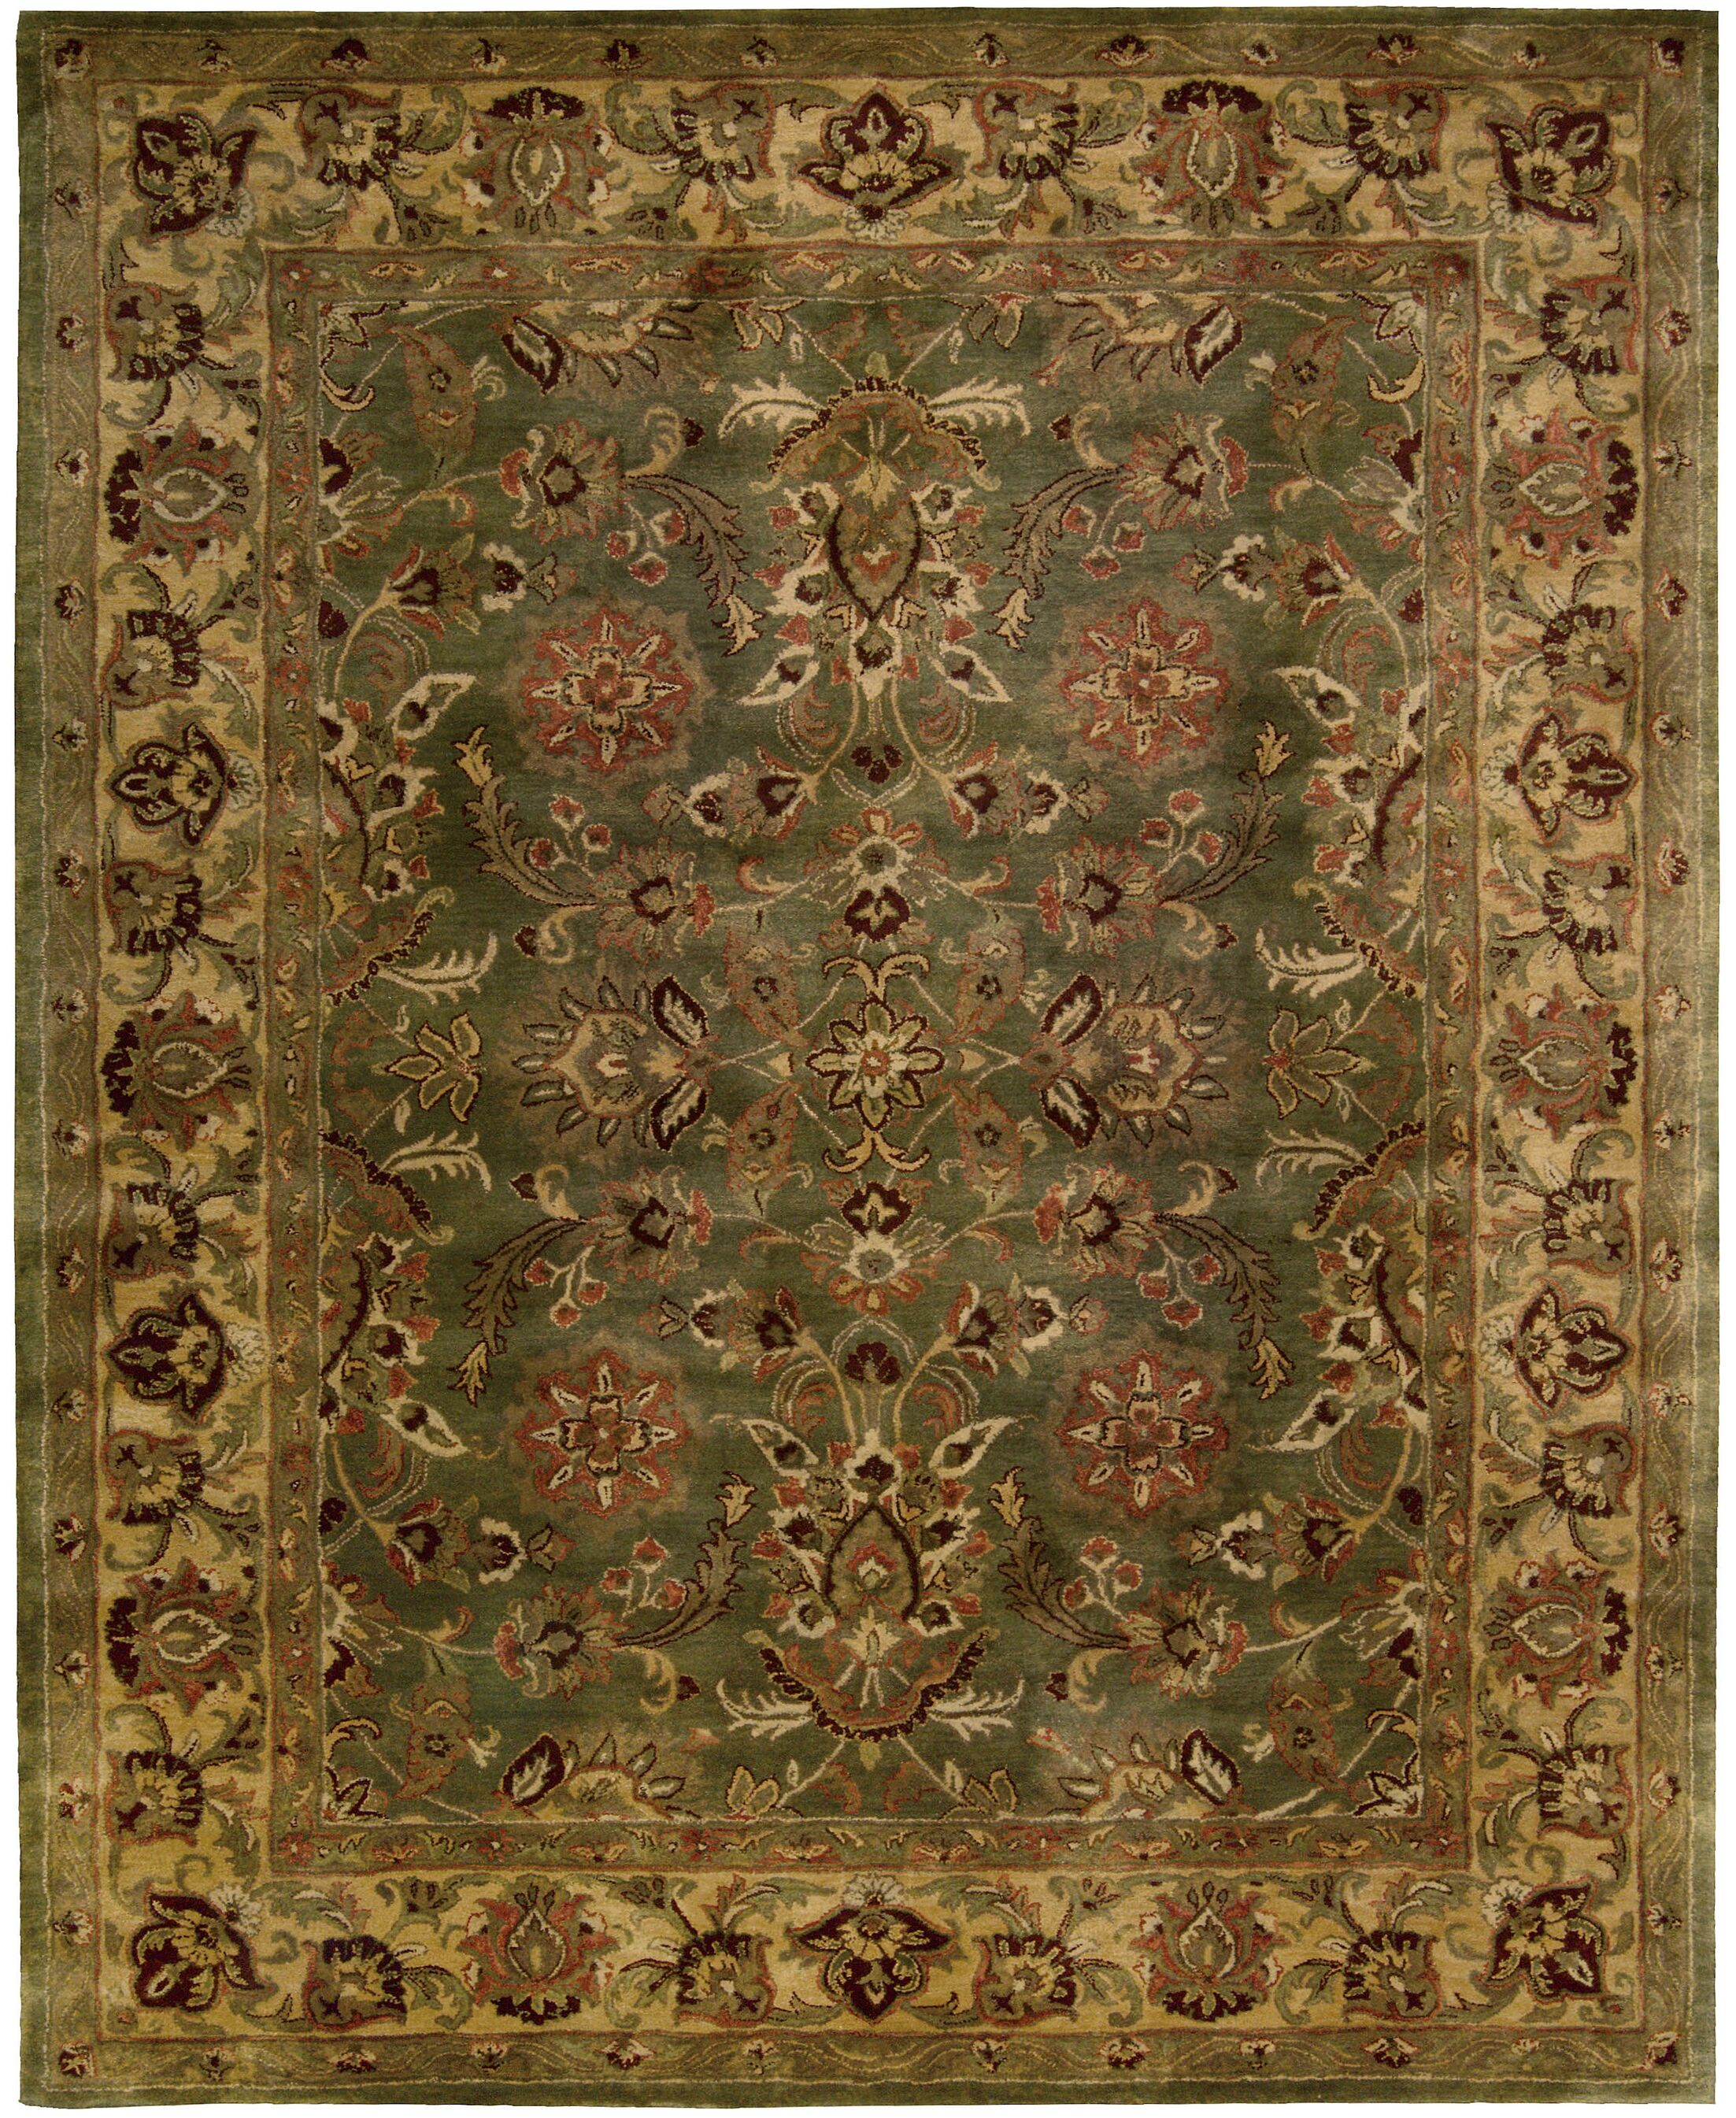 Delaware Hand-Woven Wool Area Rug Rug Size: Rectangle 5'6